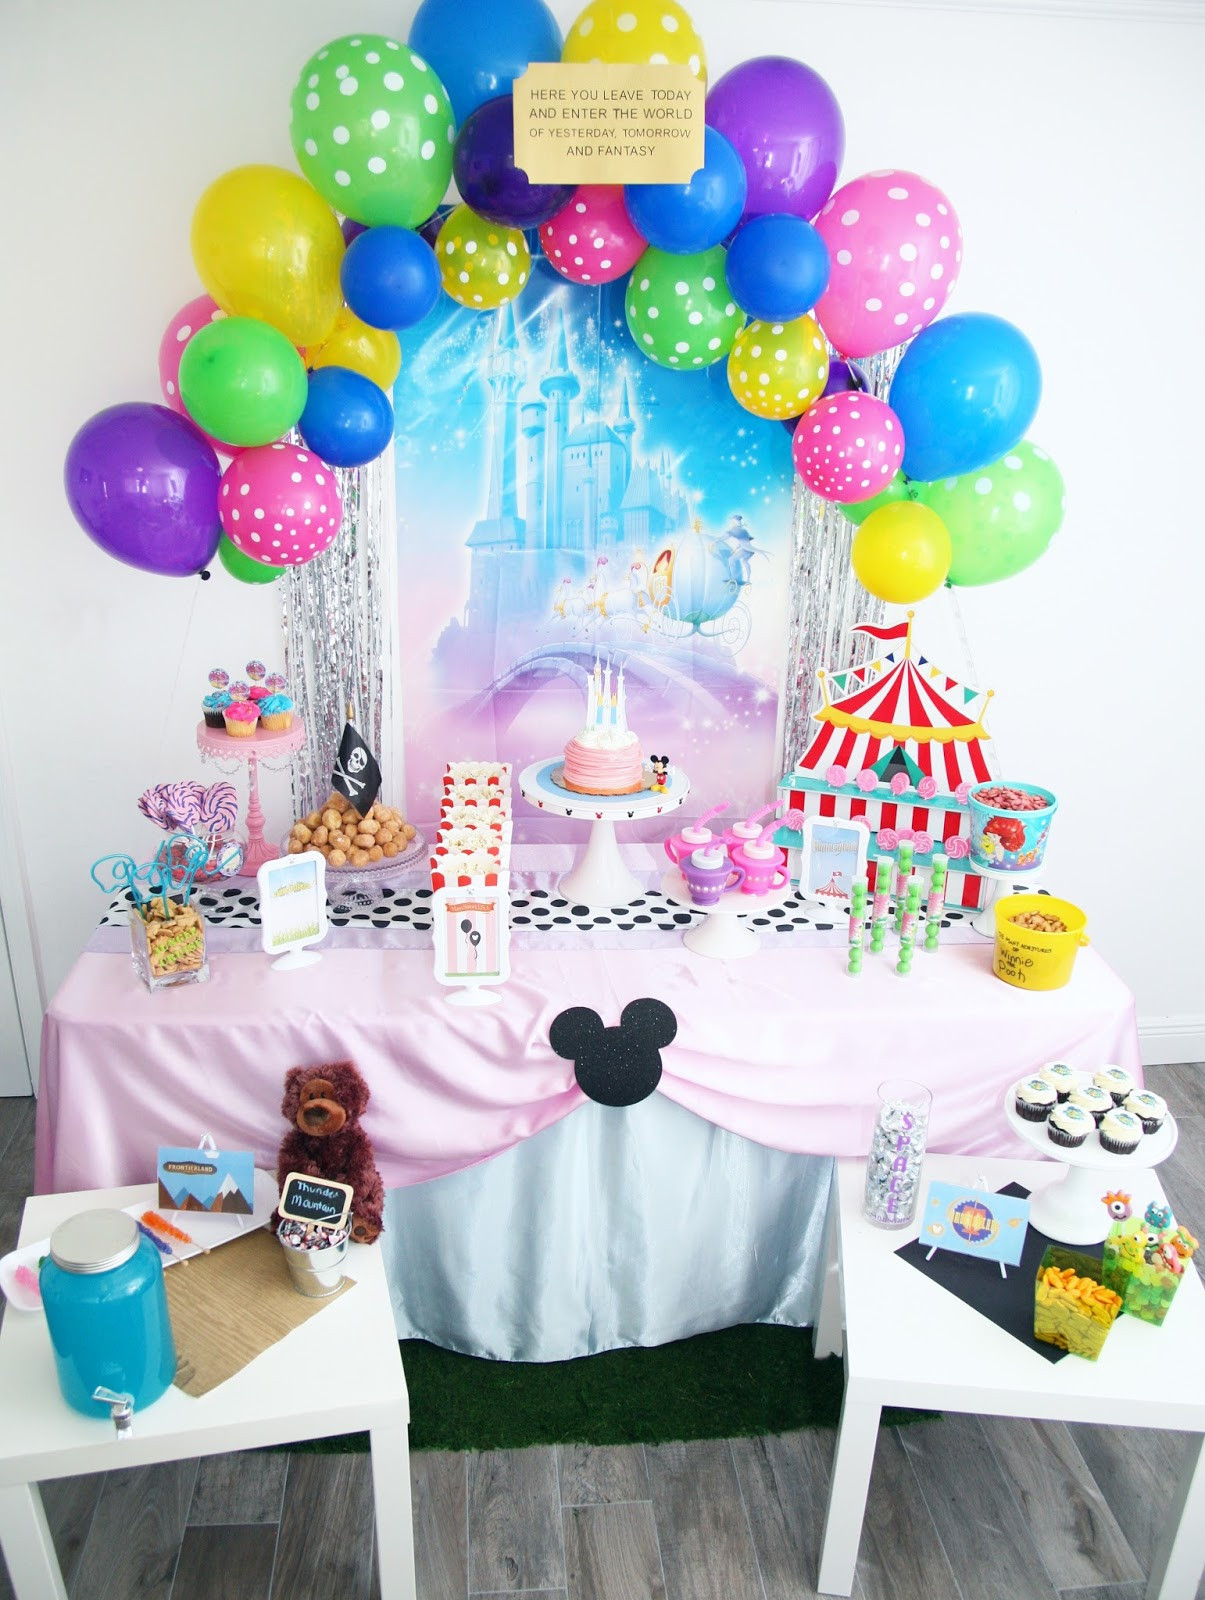 Best ideas about Disney Birthday Party . Save or Pin Walt Disney World Birthday Party Now.